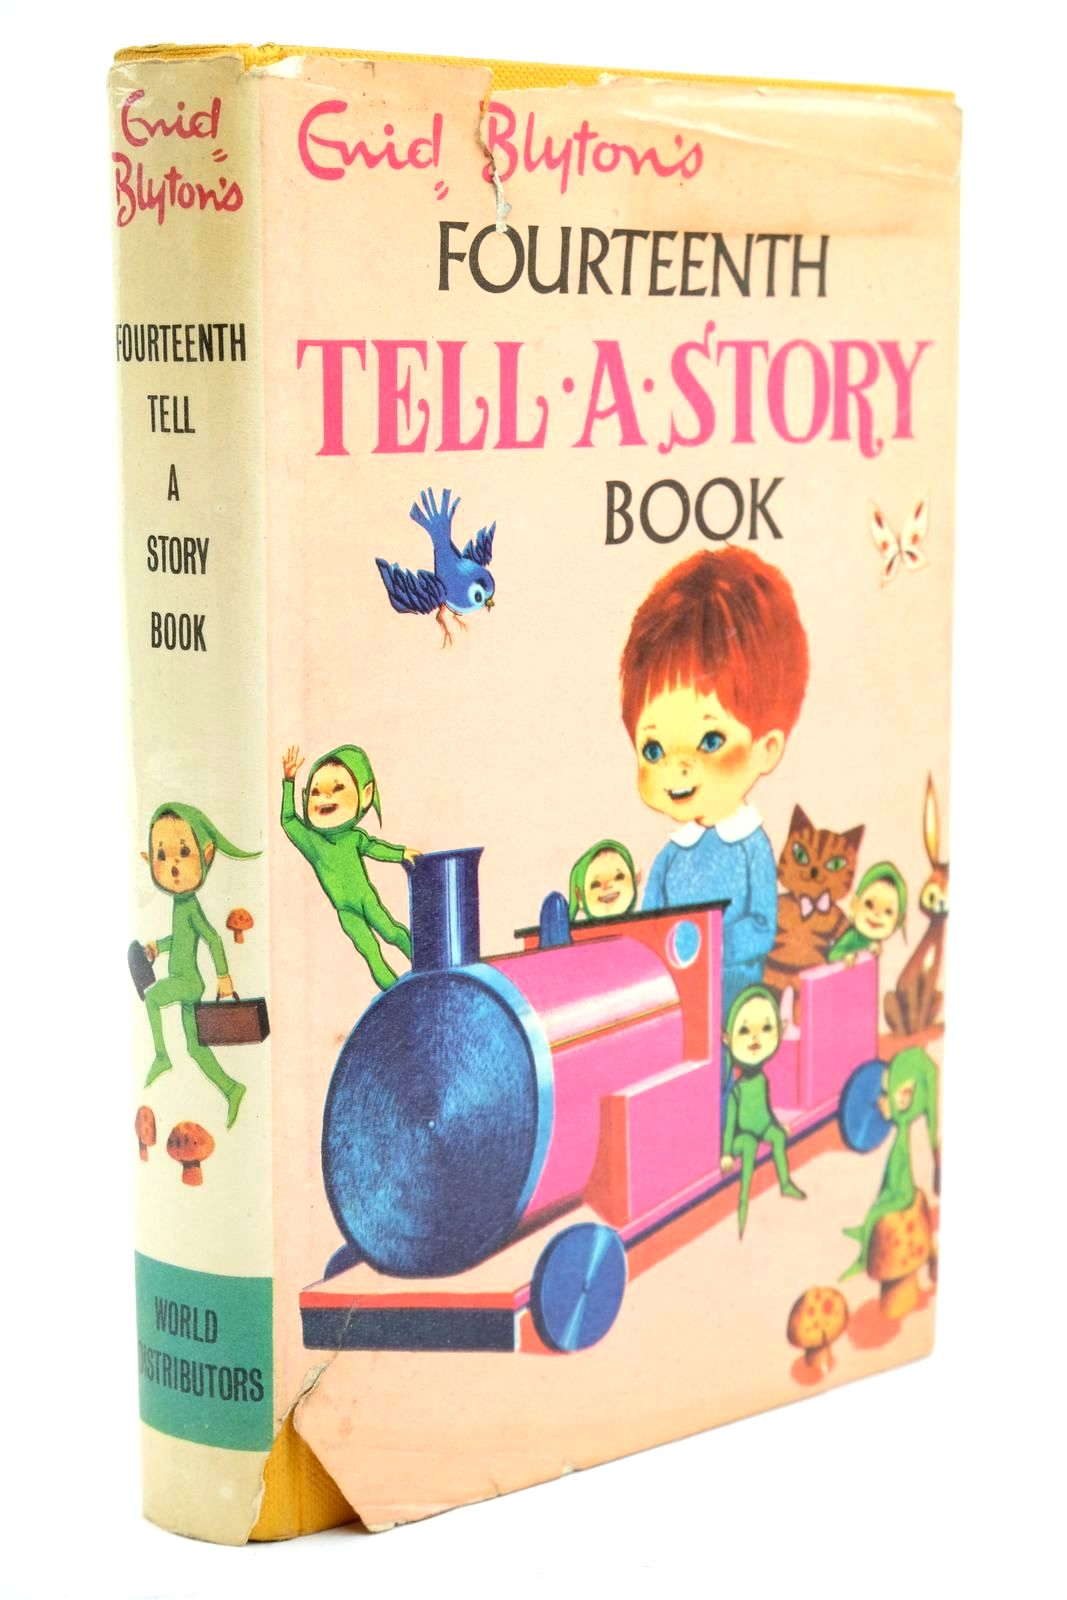 Photo of ENID BLYTON'S FOURTEENTH TELL-A-STORY BOOK- Stock Number: 1321095